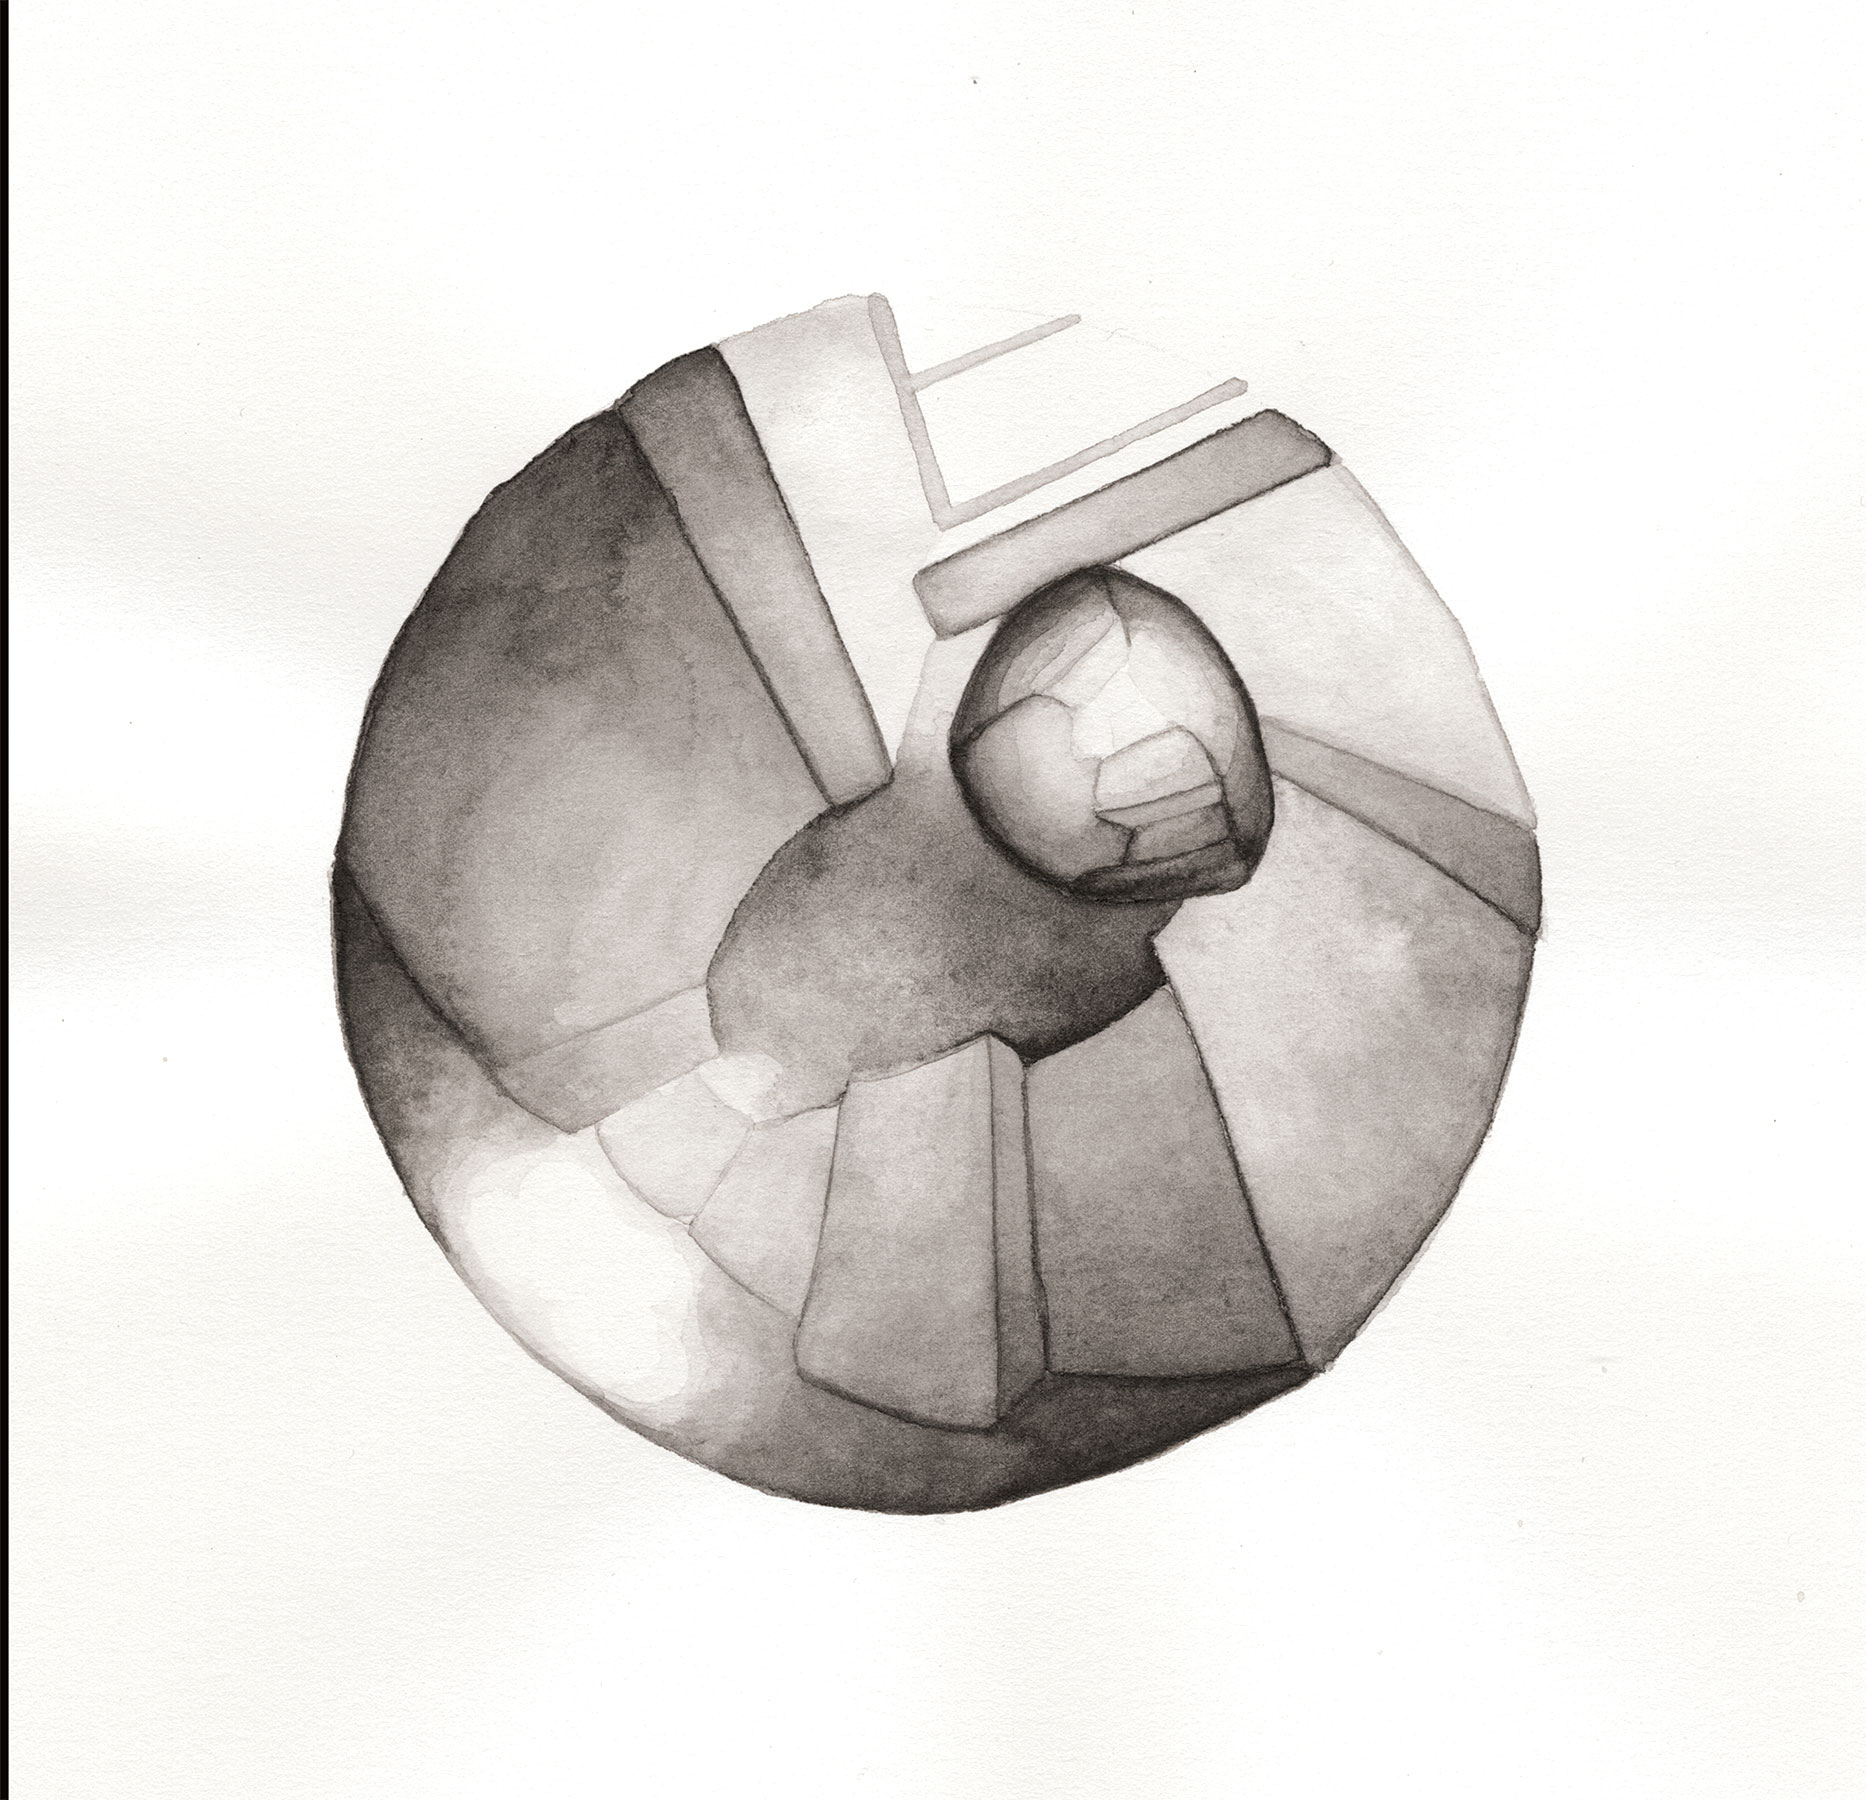 LENSING 2, 2015, 9 X 8 1/2 INCHES, WATERCOLOR ON PAPER